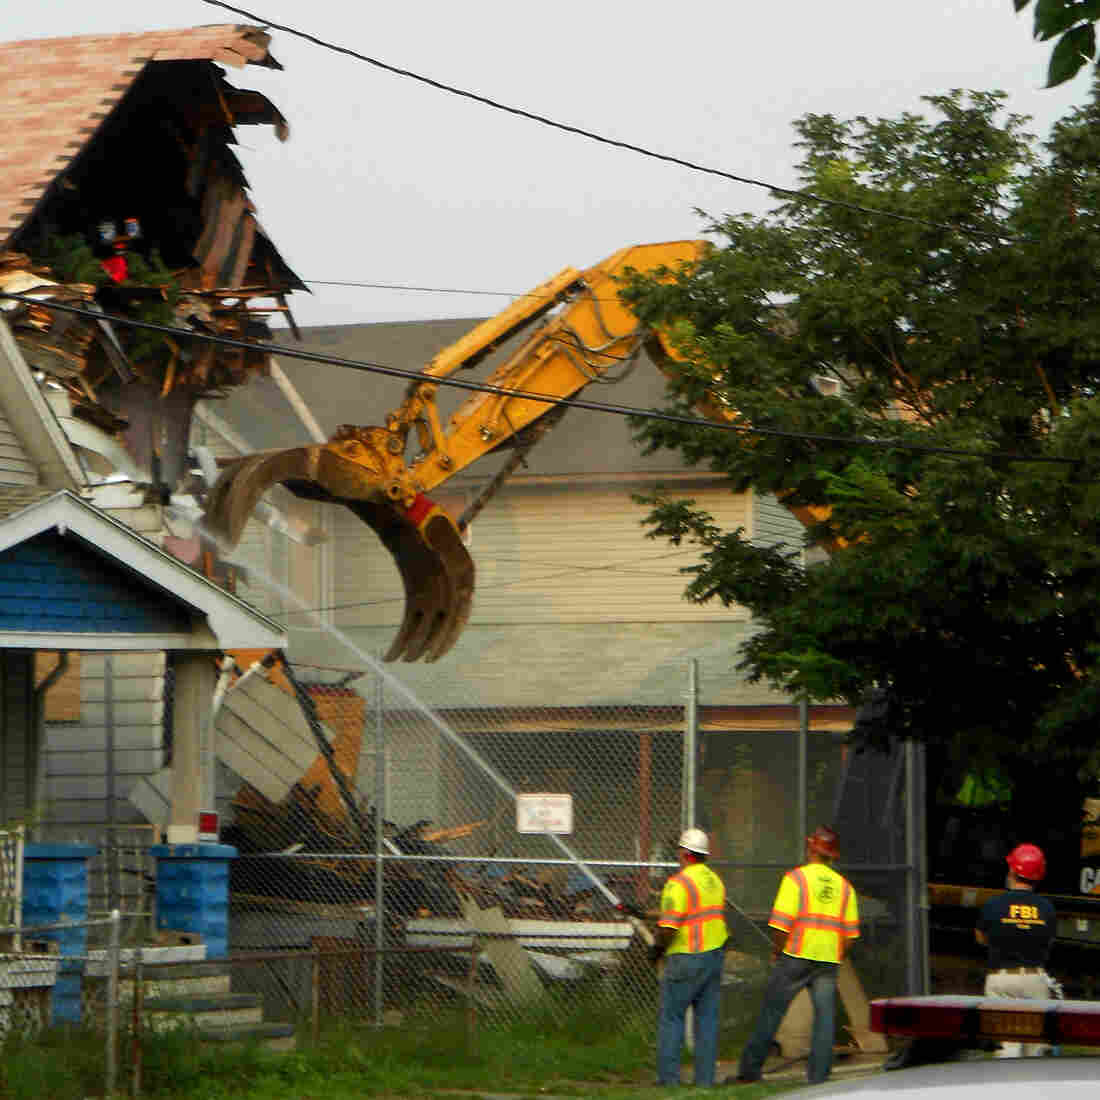 'Monument To Hell' Is No More: Cleveland Rapist's House Is Torn Down